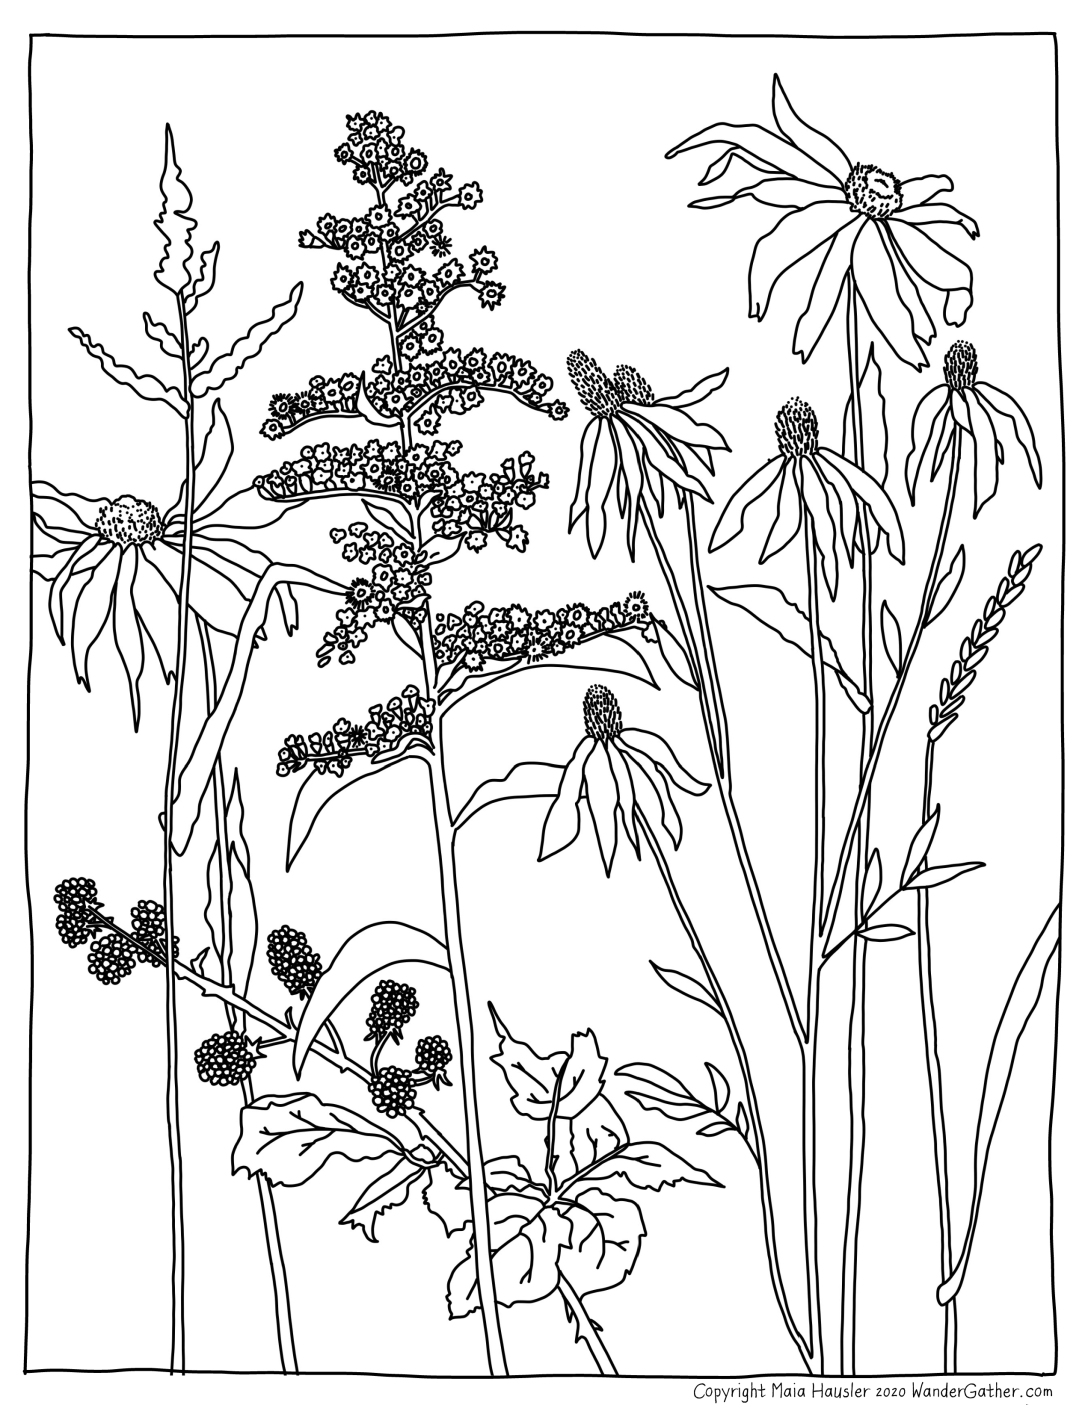 Wildflower Coloring Page Copyright-01